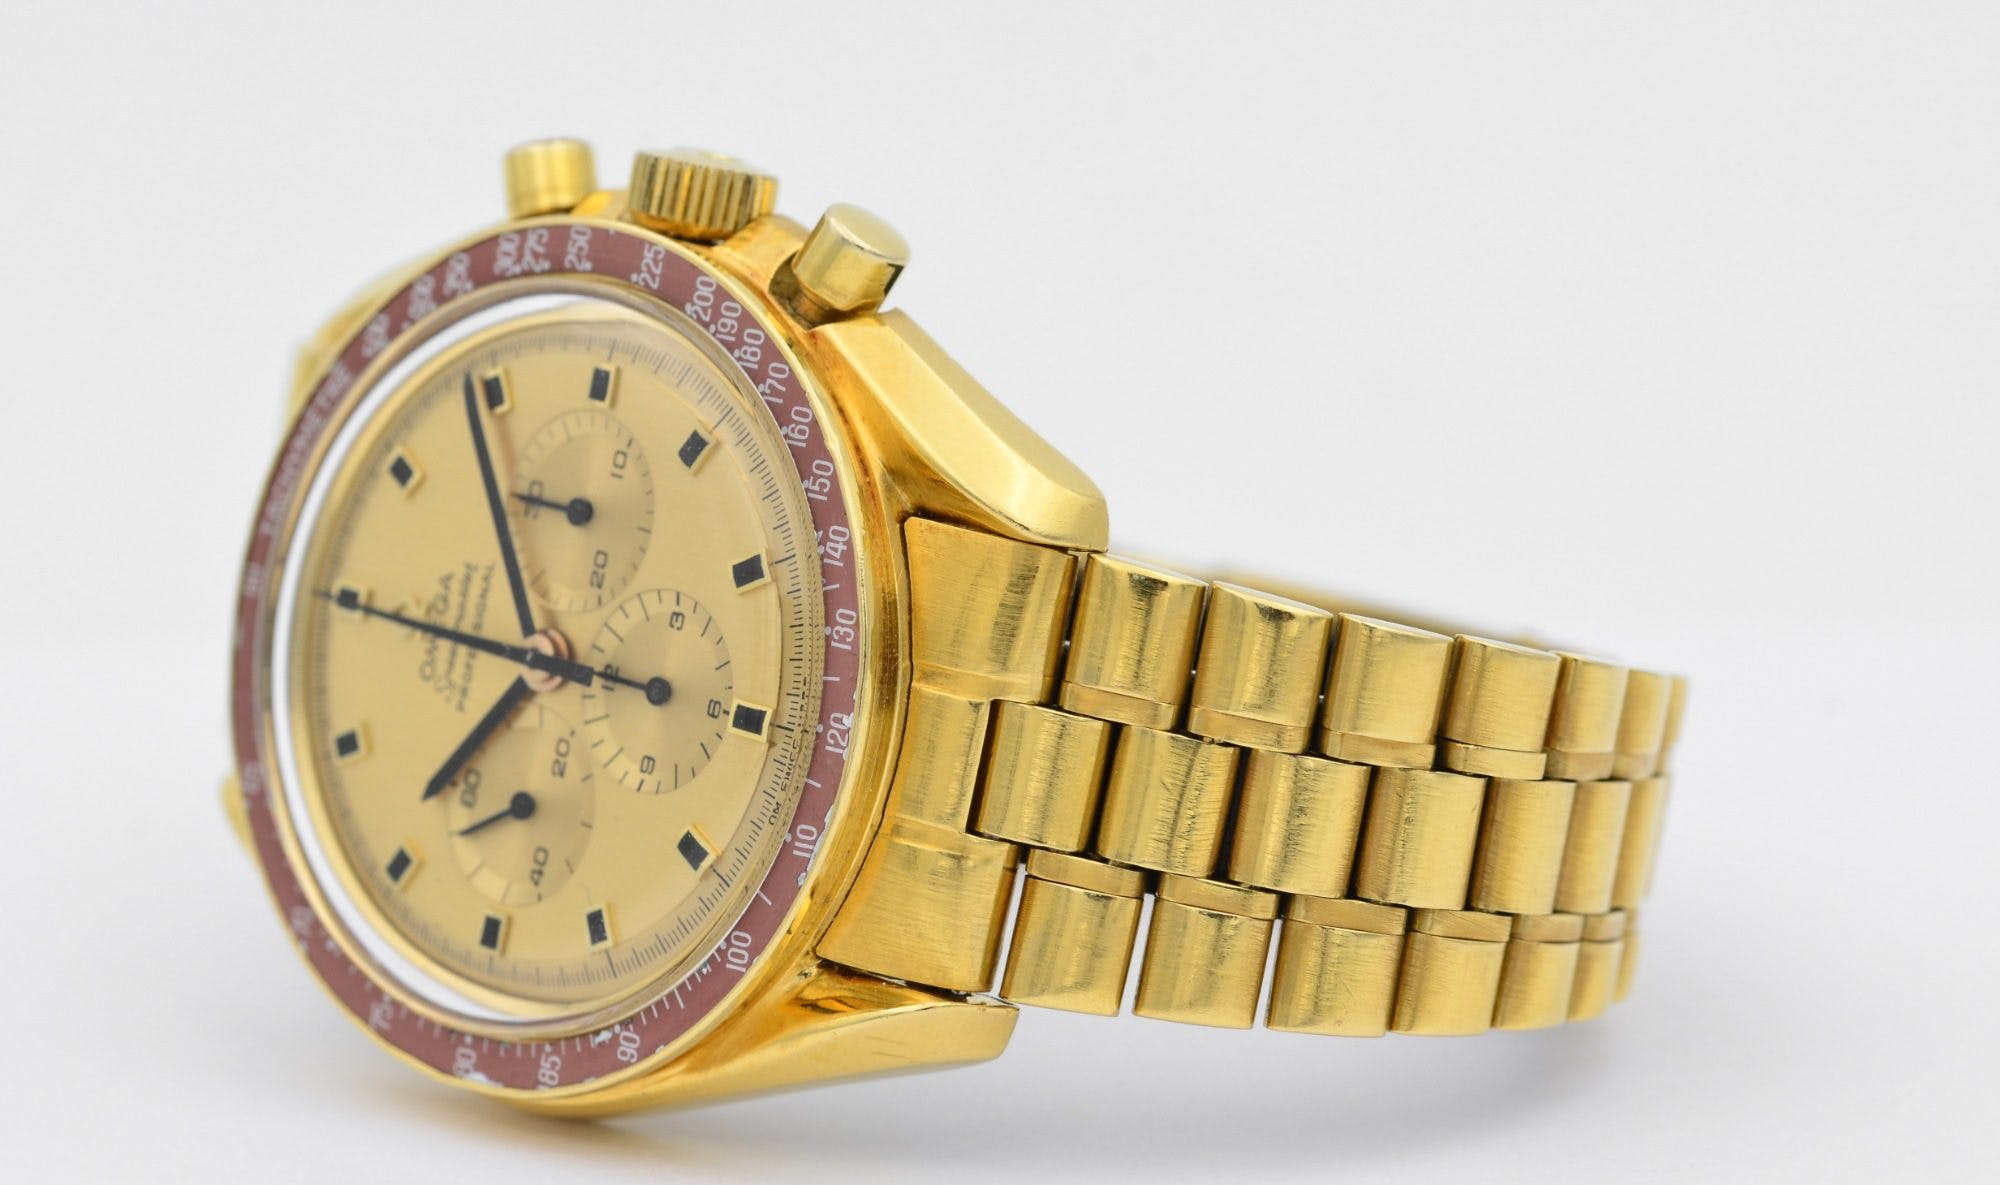 Original Omega Speedmaster Apollo 11 von 1969